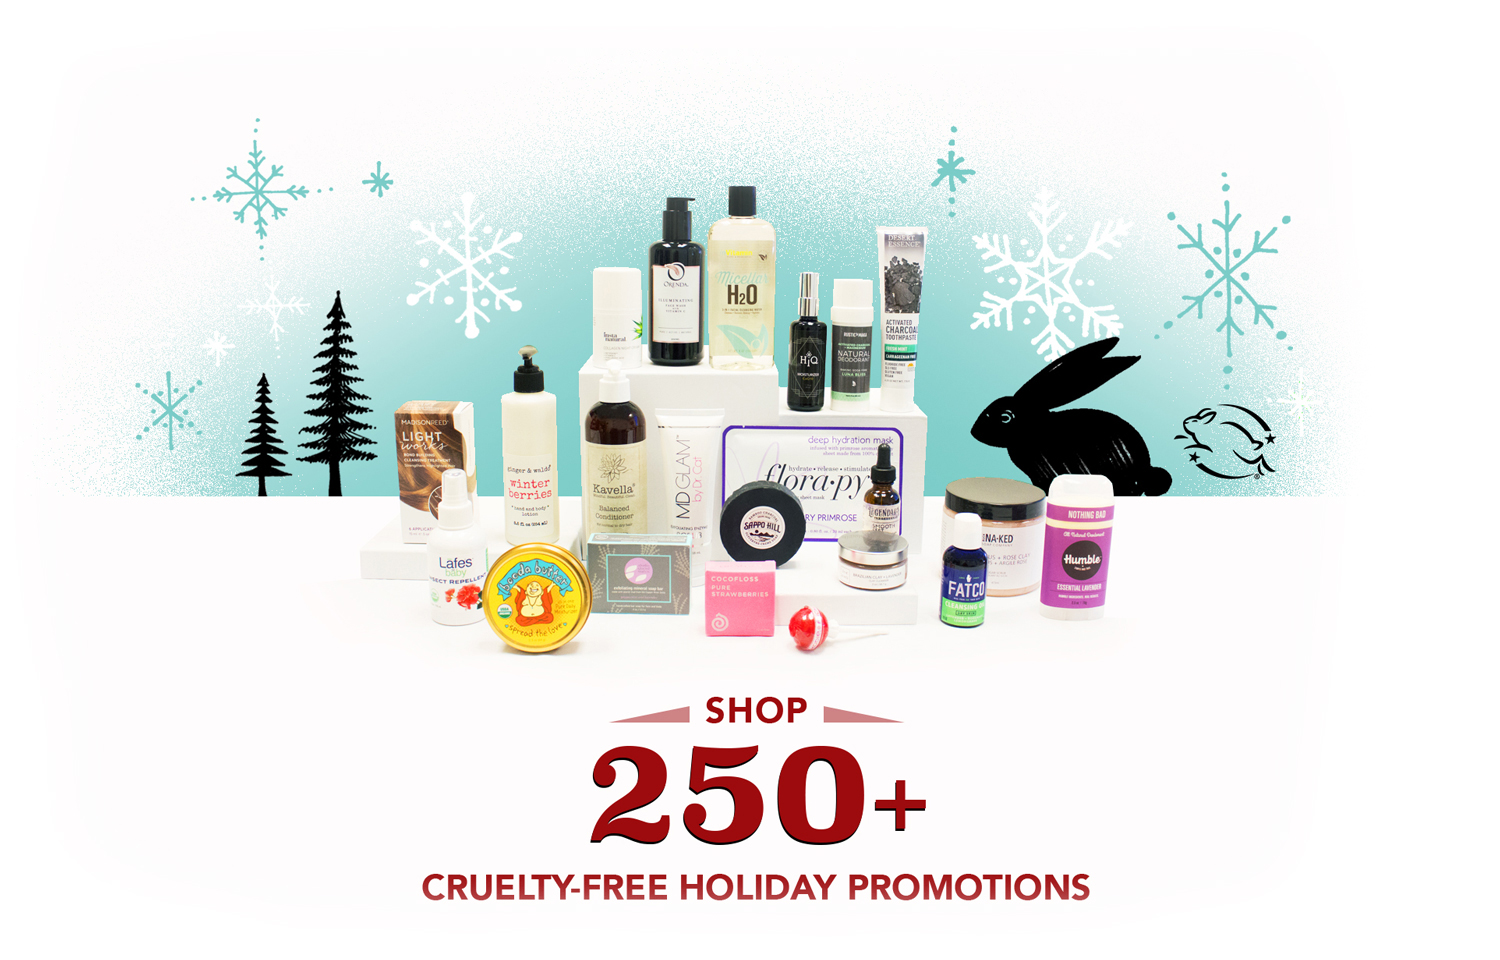 Shop 250+ Cruelty-Free Holiday Promotions